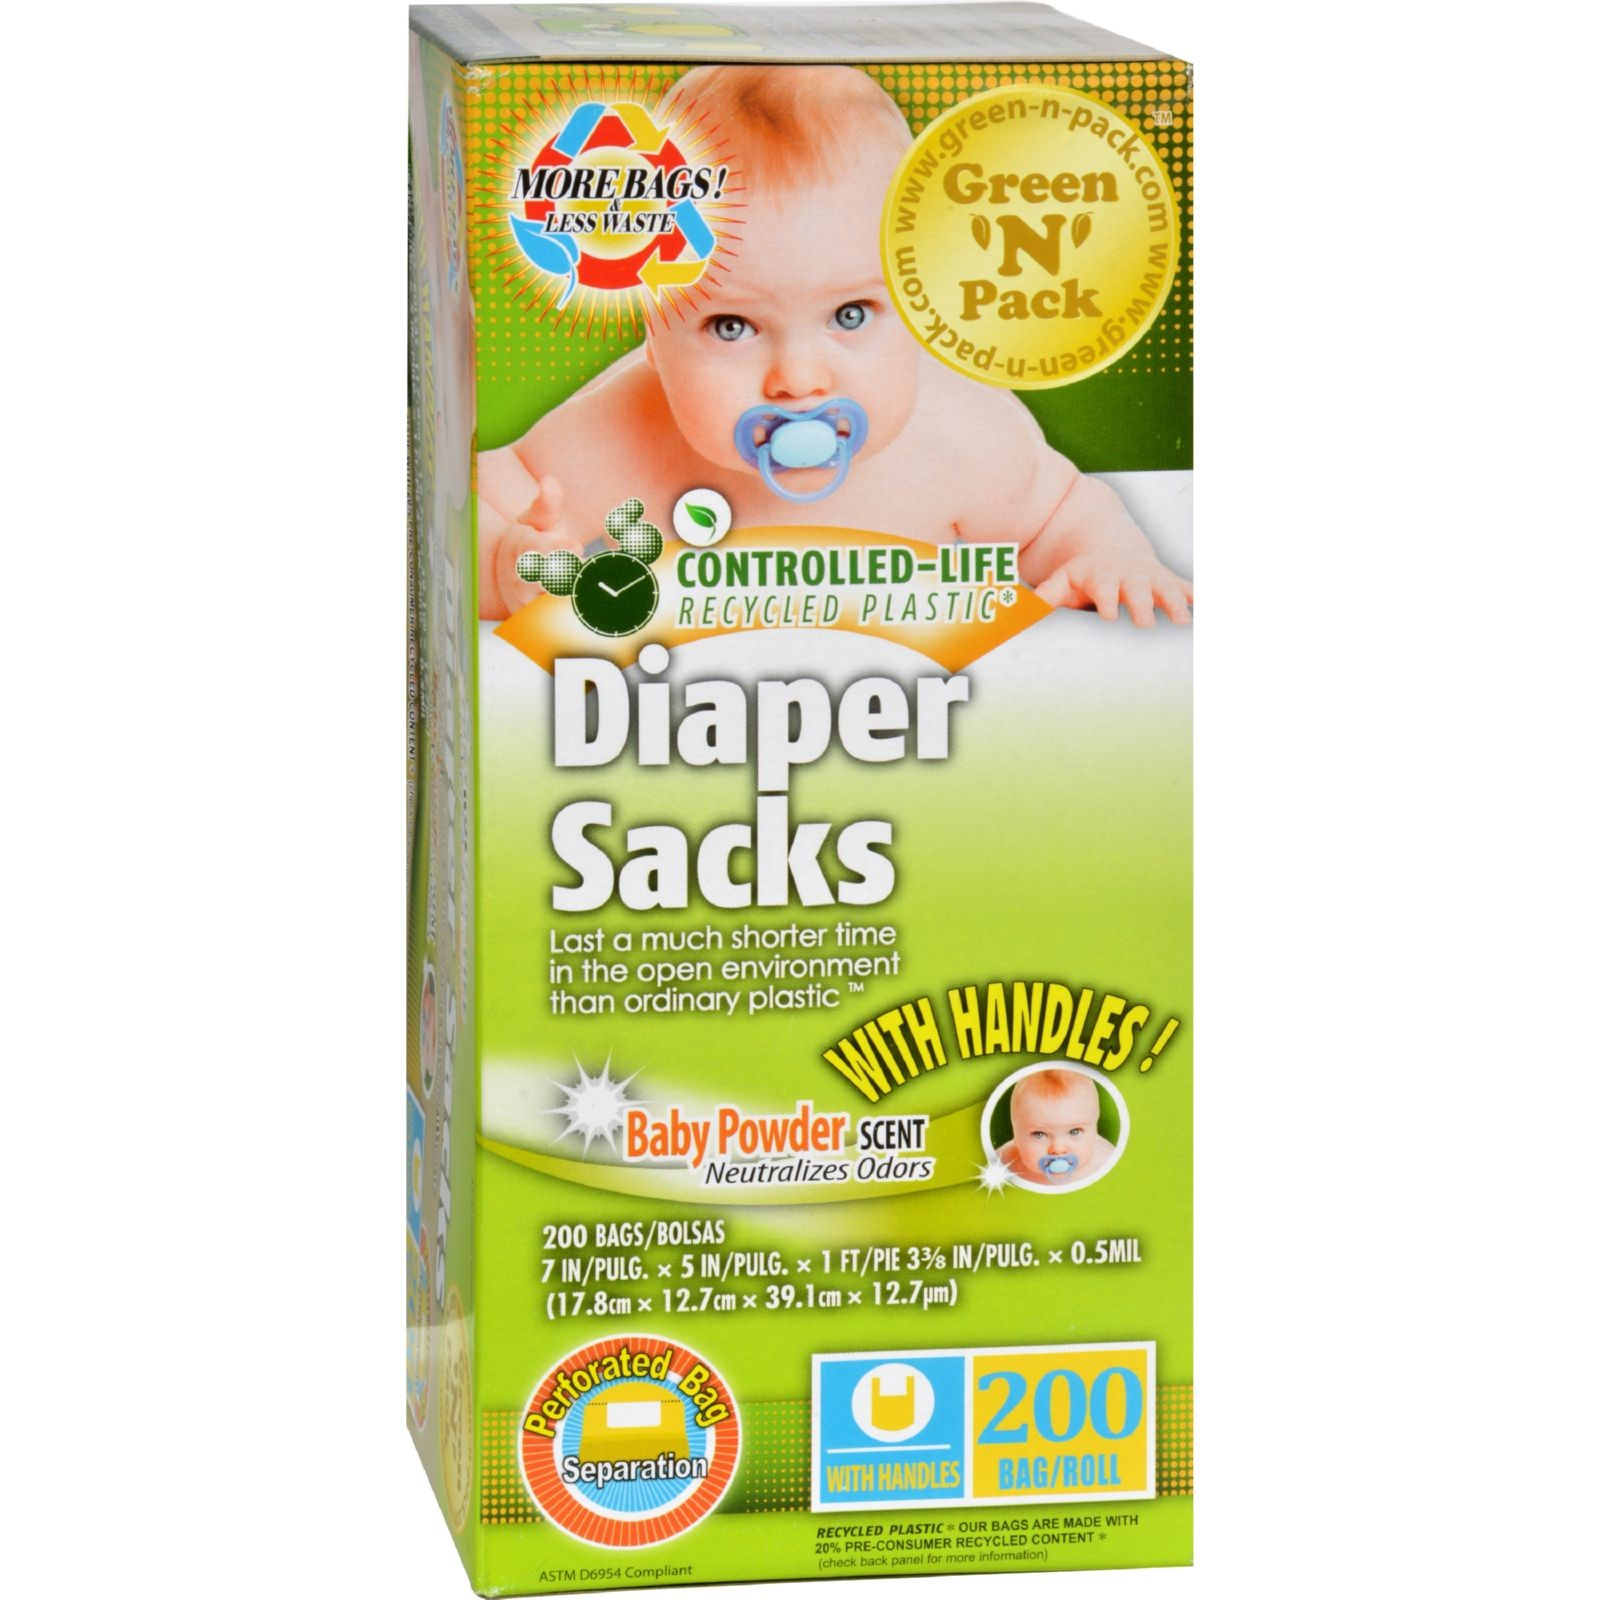 Green-N-Pack Disposable Diaper Bags - Scented - 200 Count